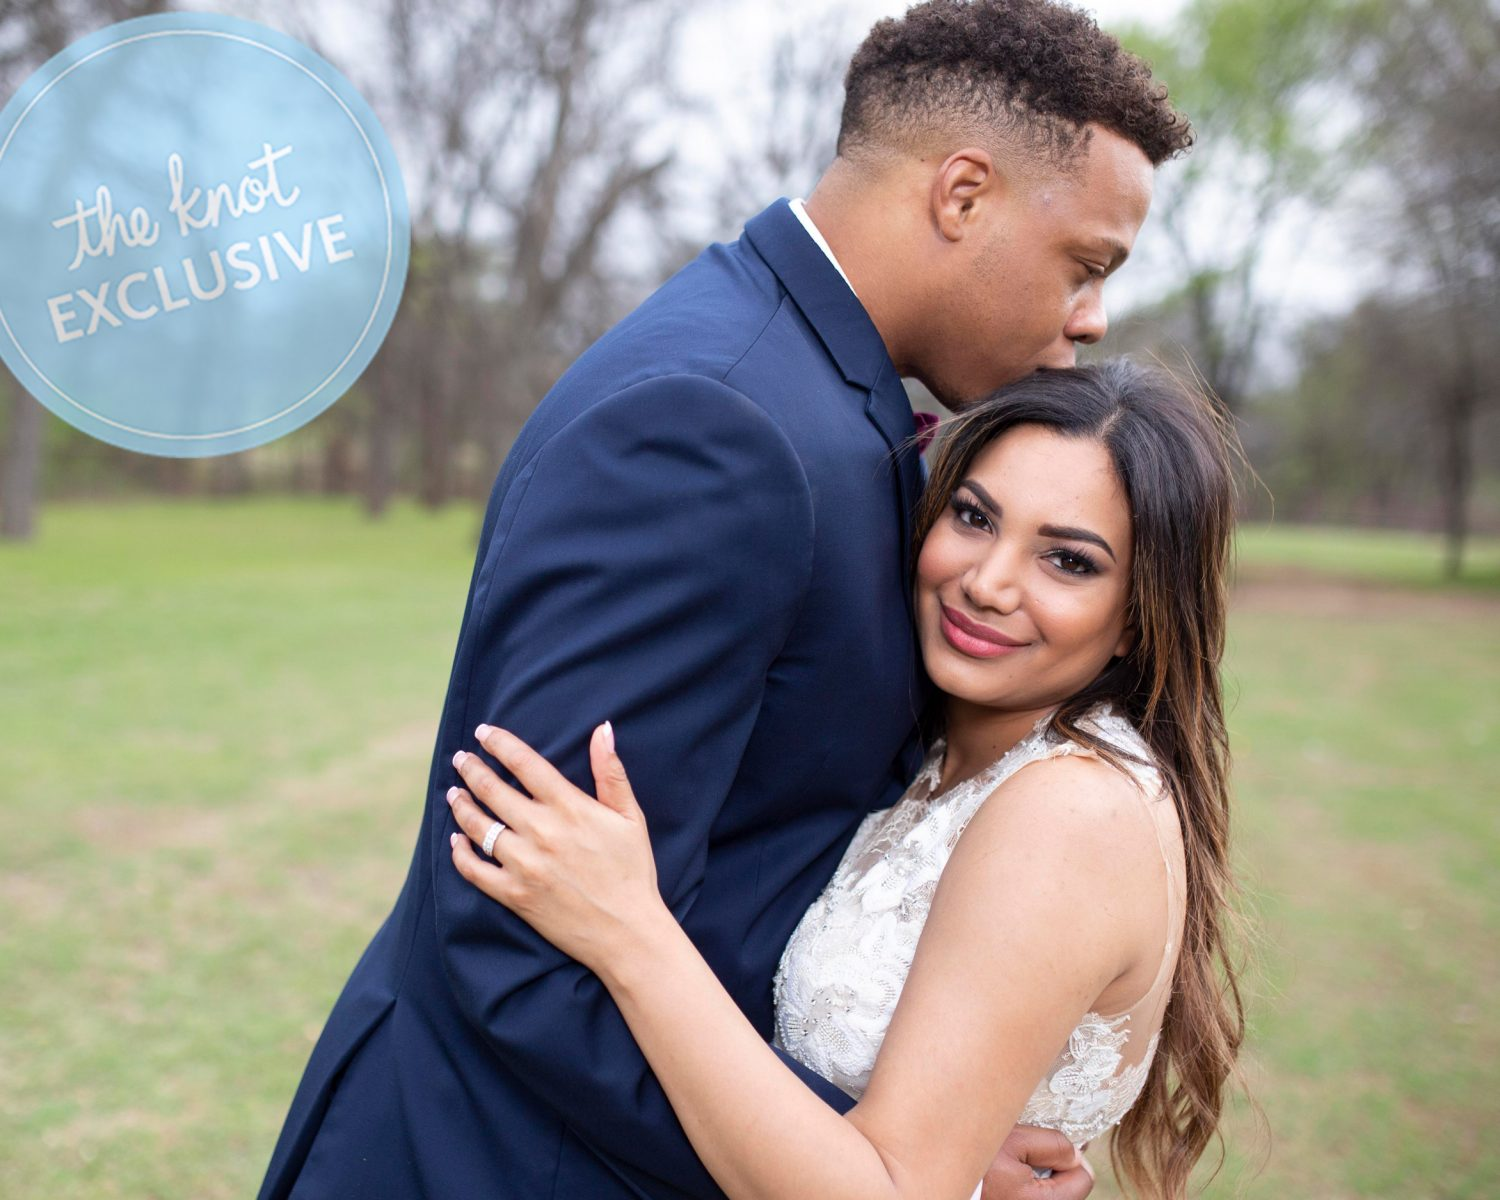 Exclusive Married At First Sight Season 7 Wedding Photos And